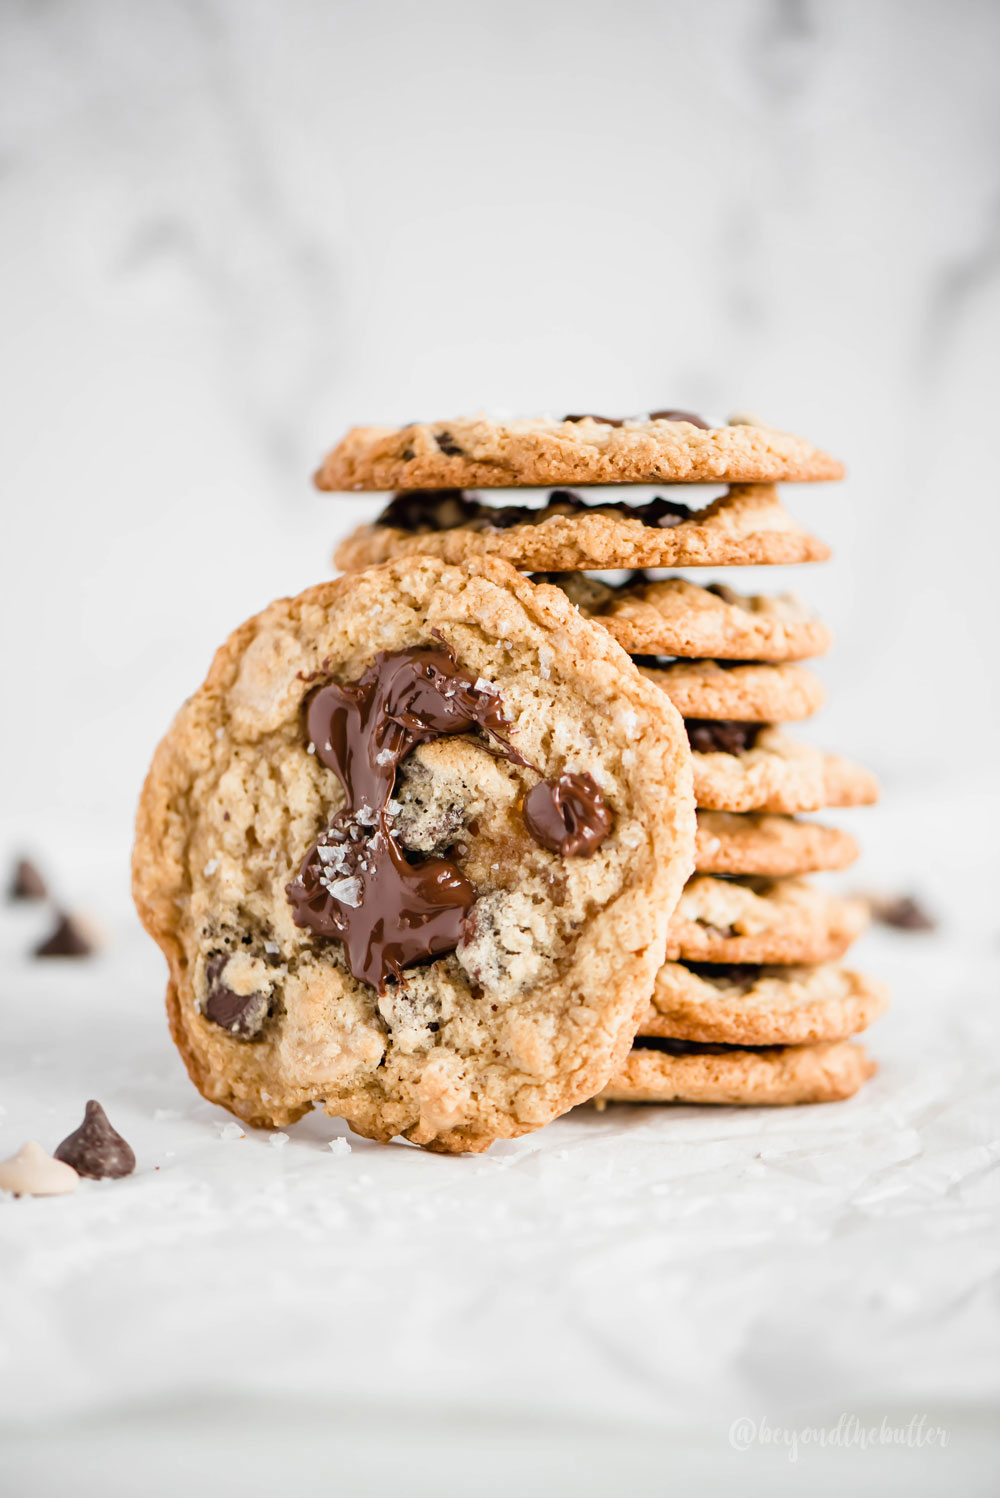 Oatmeal Chocolate Chip Salted Caramel Cookies   Overhead photo of oatmeal chocolate chip salted caramel cookies   Image and Copyright Credit: Beyond the Butter, LLC